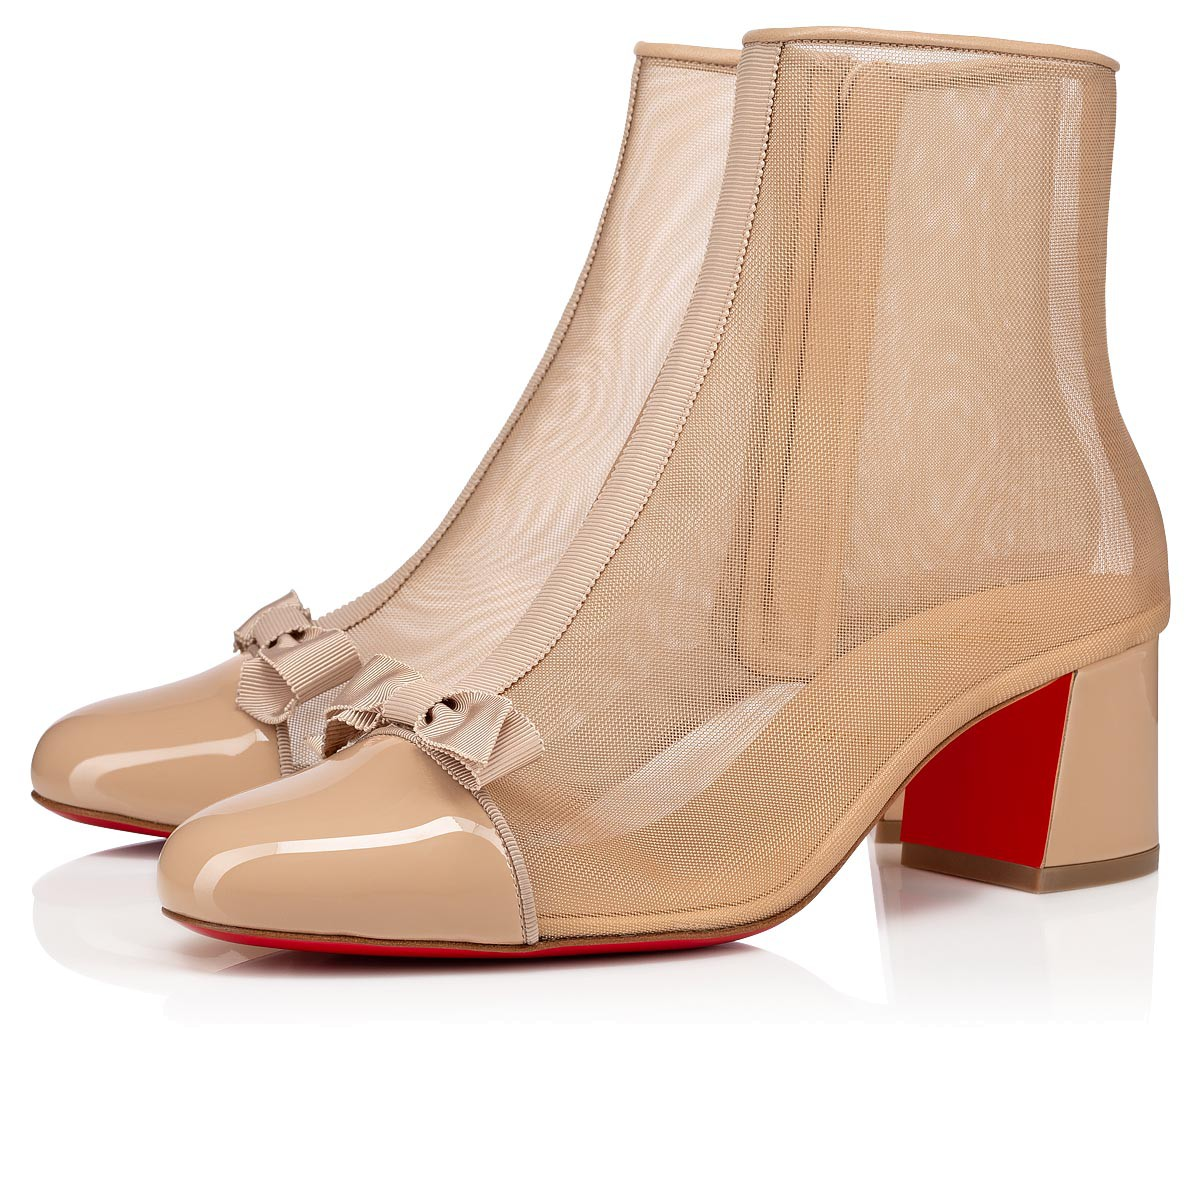 Christian Louboutin #christianlouboutinwedding | Christian